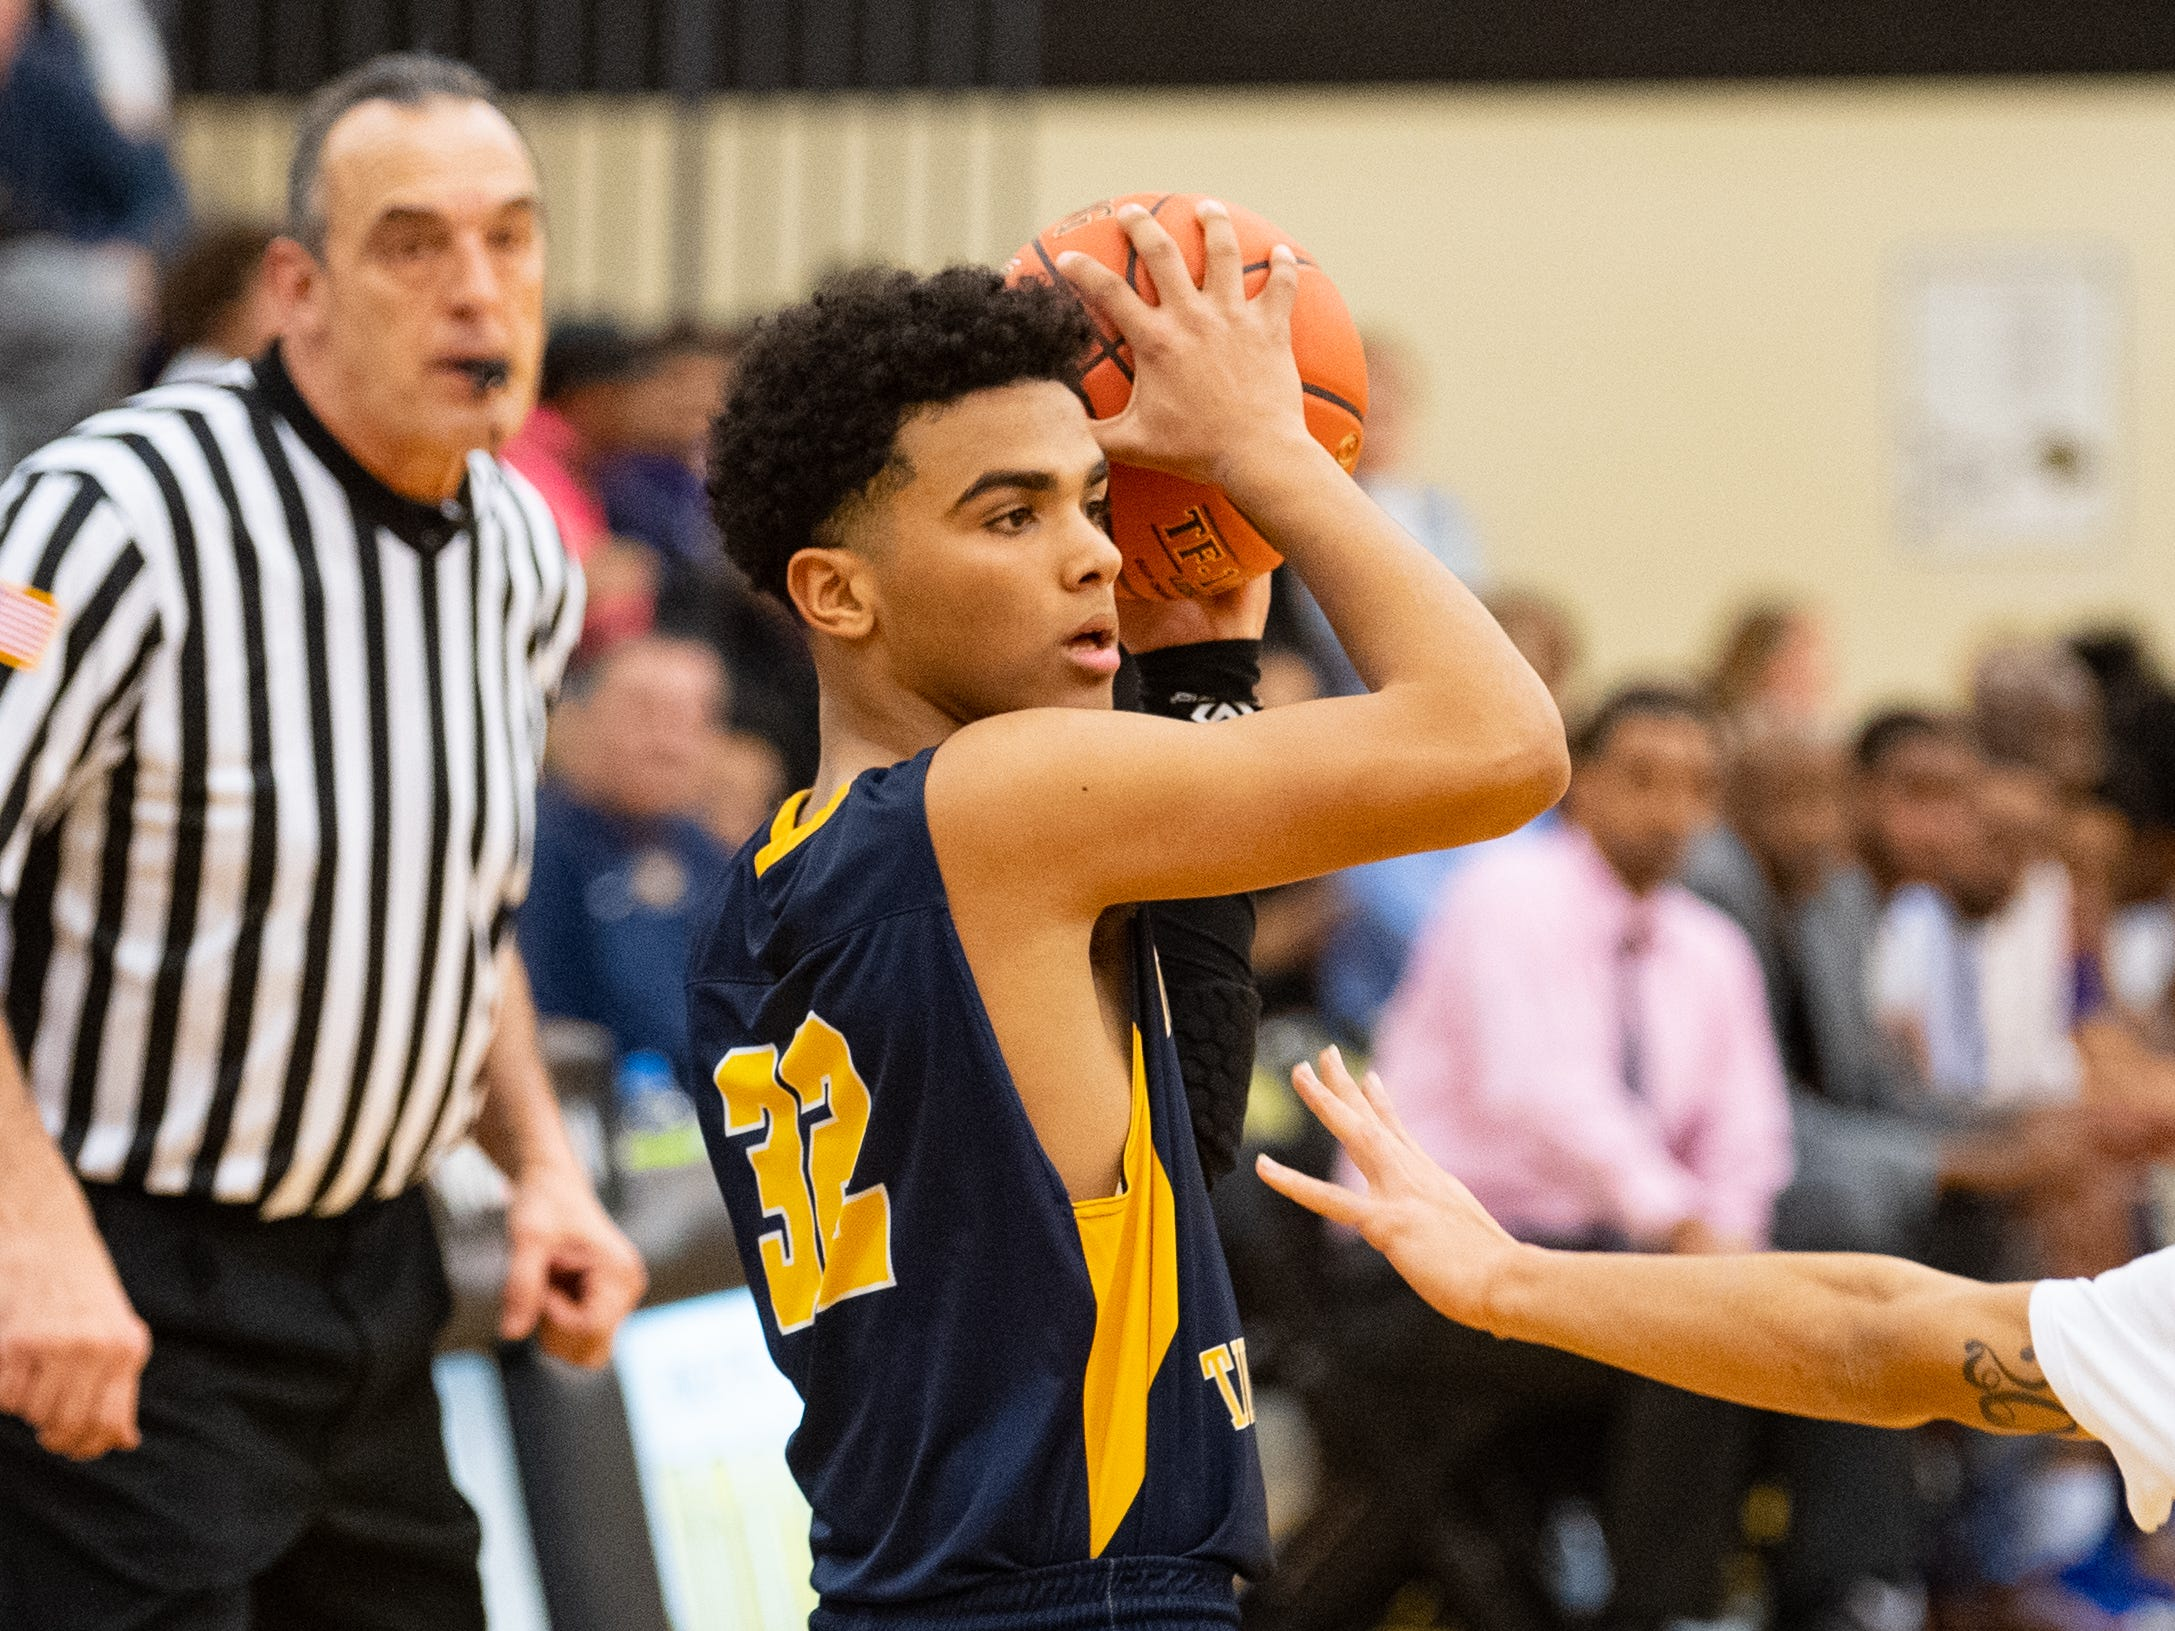 Jayden Weishaar (32) protects the ball during the YAIAA boys' basketball semifinals between York High and Littlestown, Wednesday, February 13, 2019 at Red Lion Area High School. The Bearcats defeated the Thunderbolts 74 to 51.